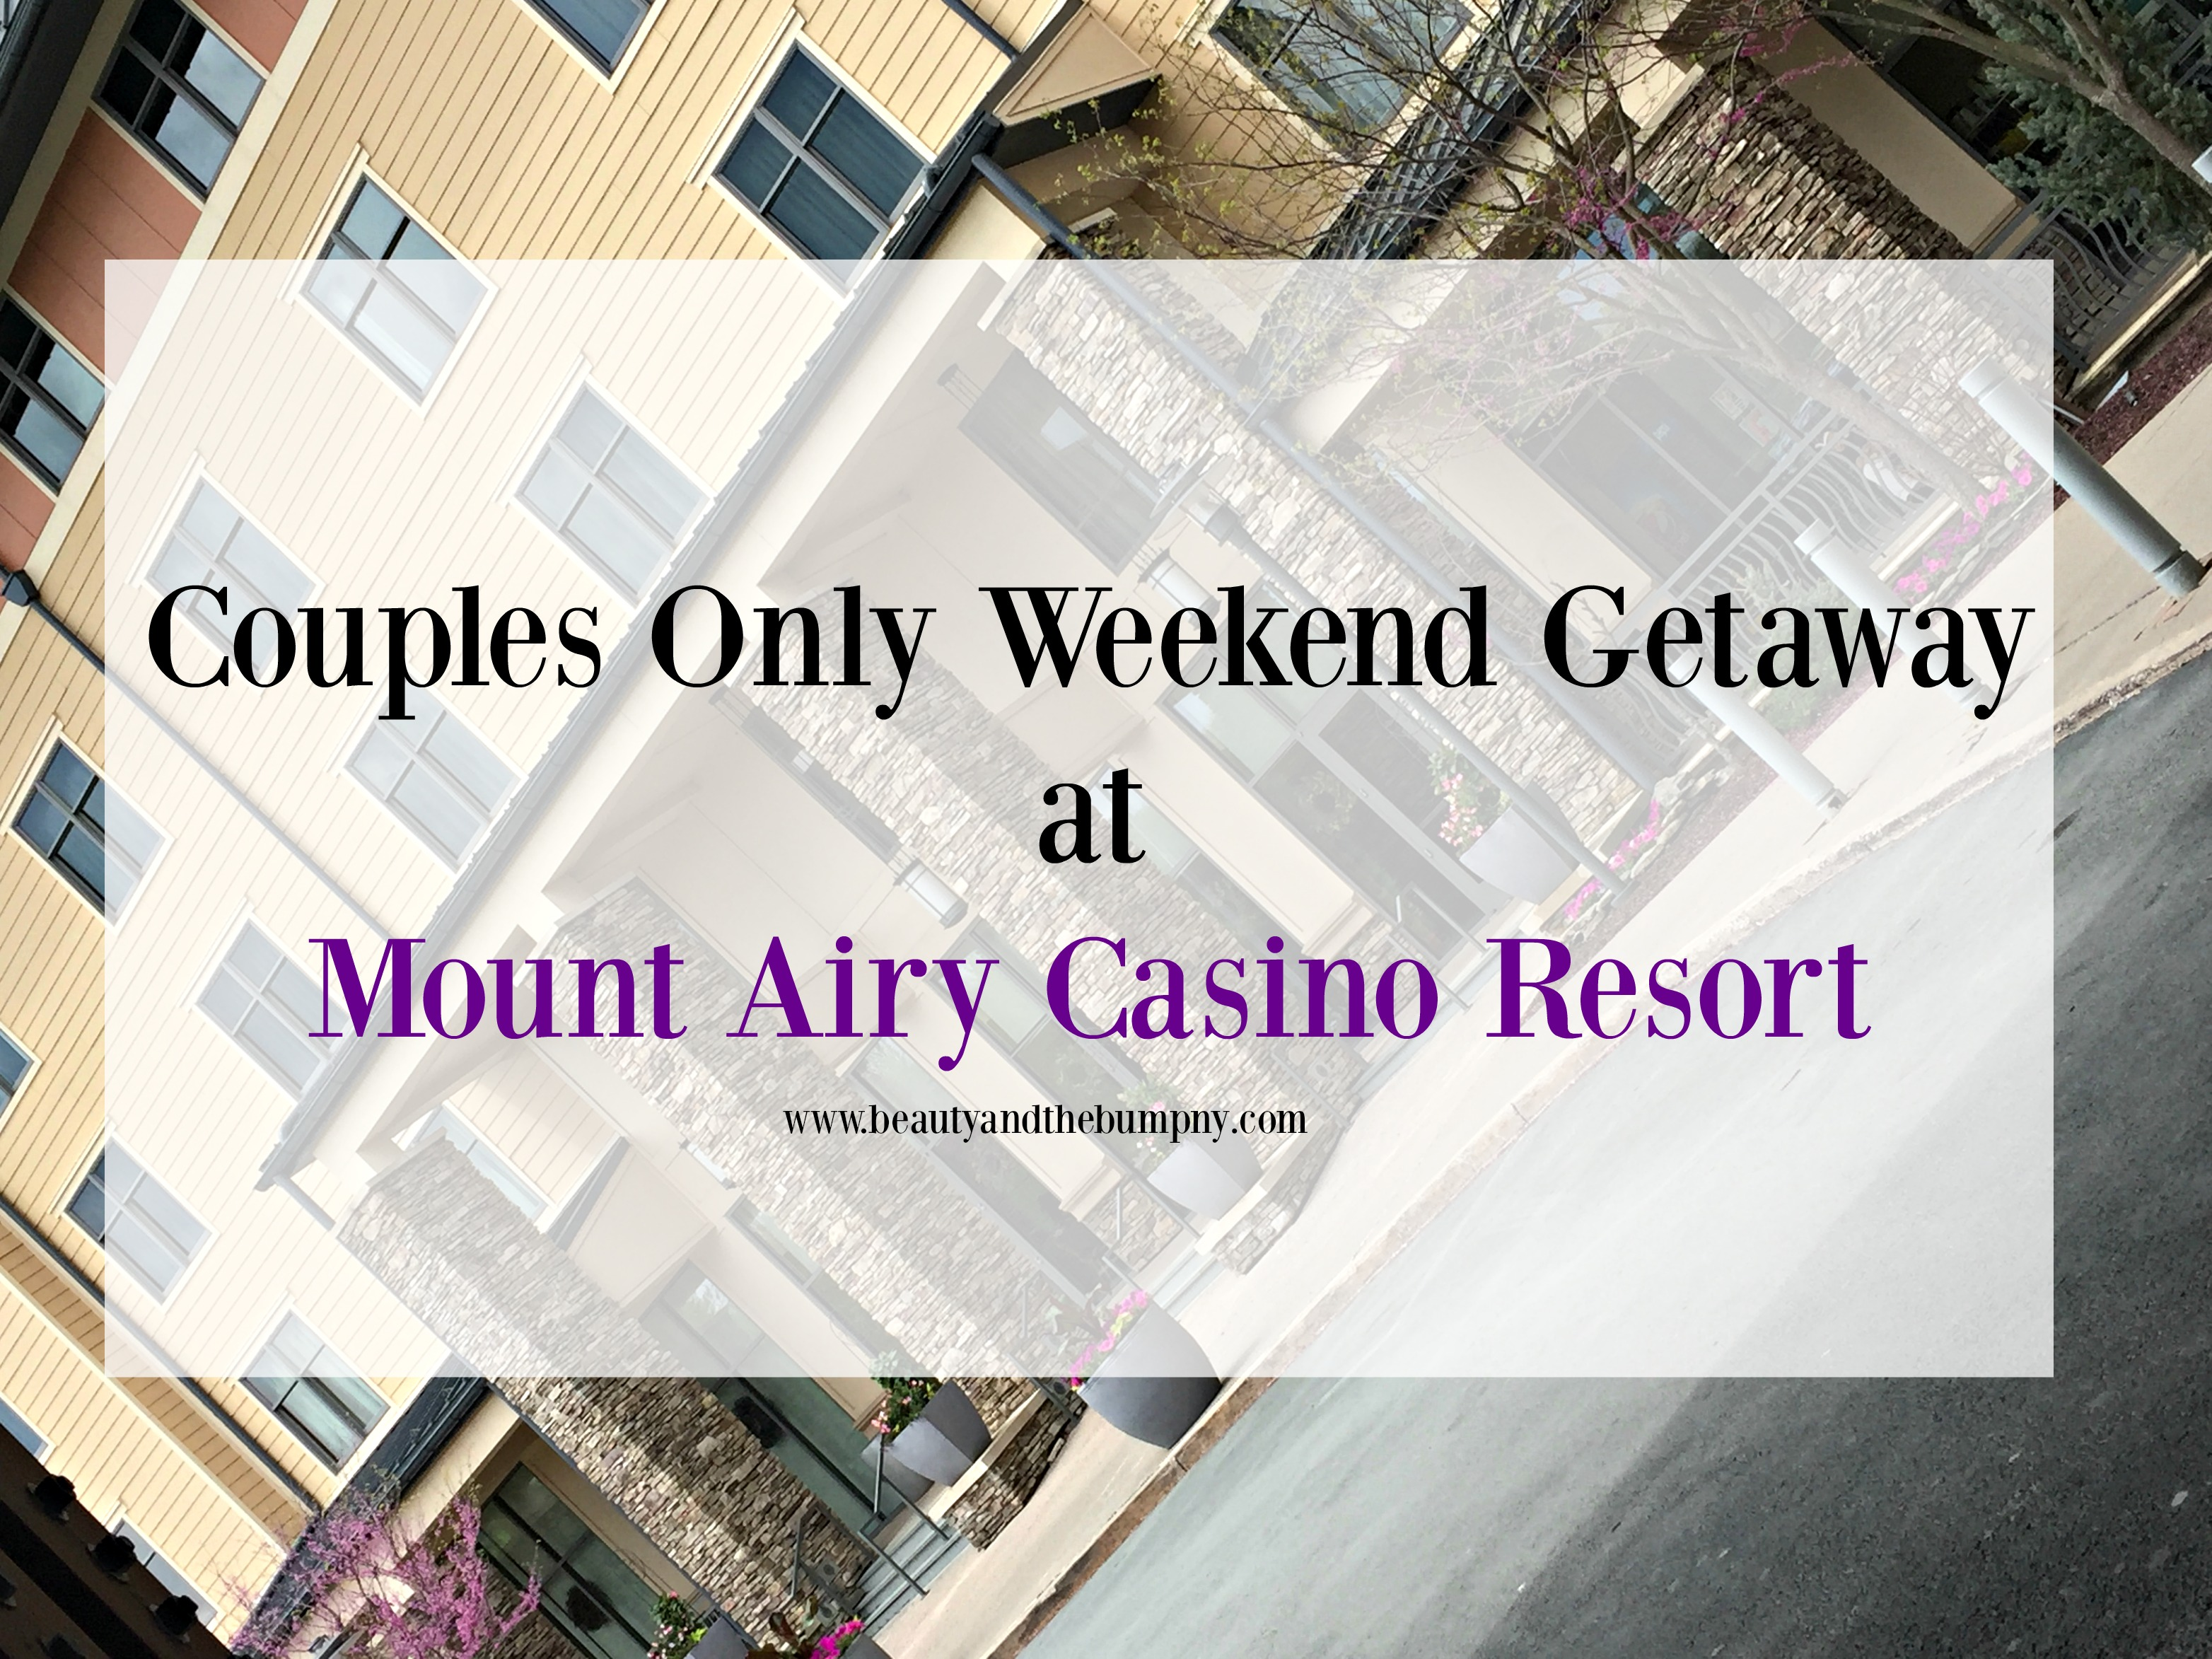 Couples Only Weekend Getaway at Mount Airy Casino Resort